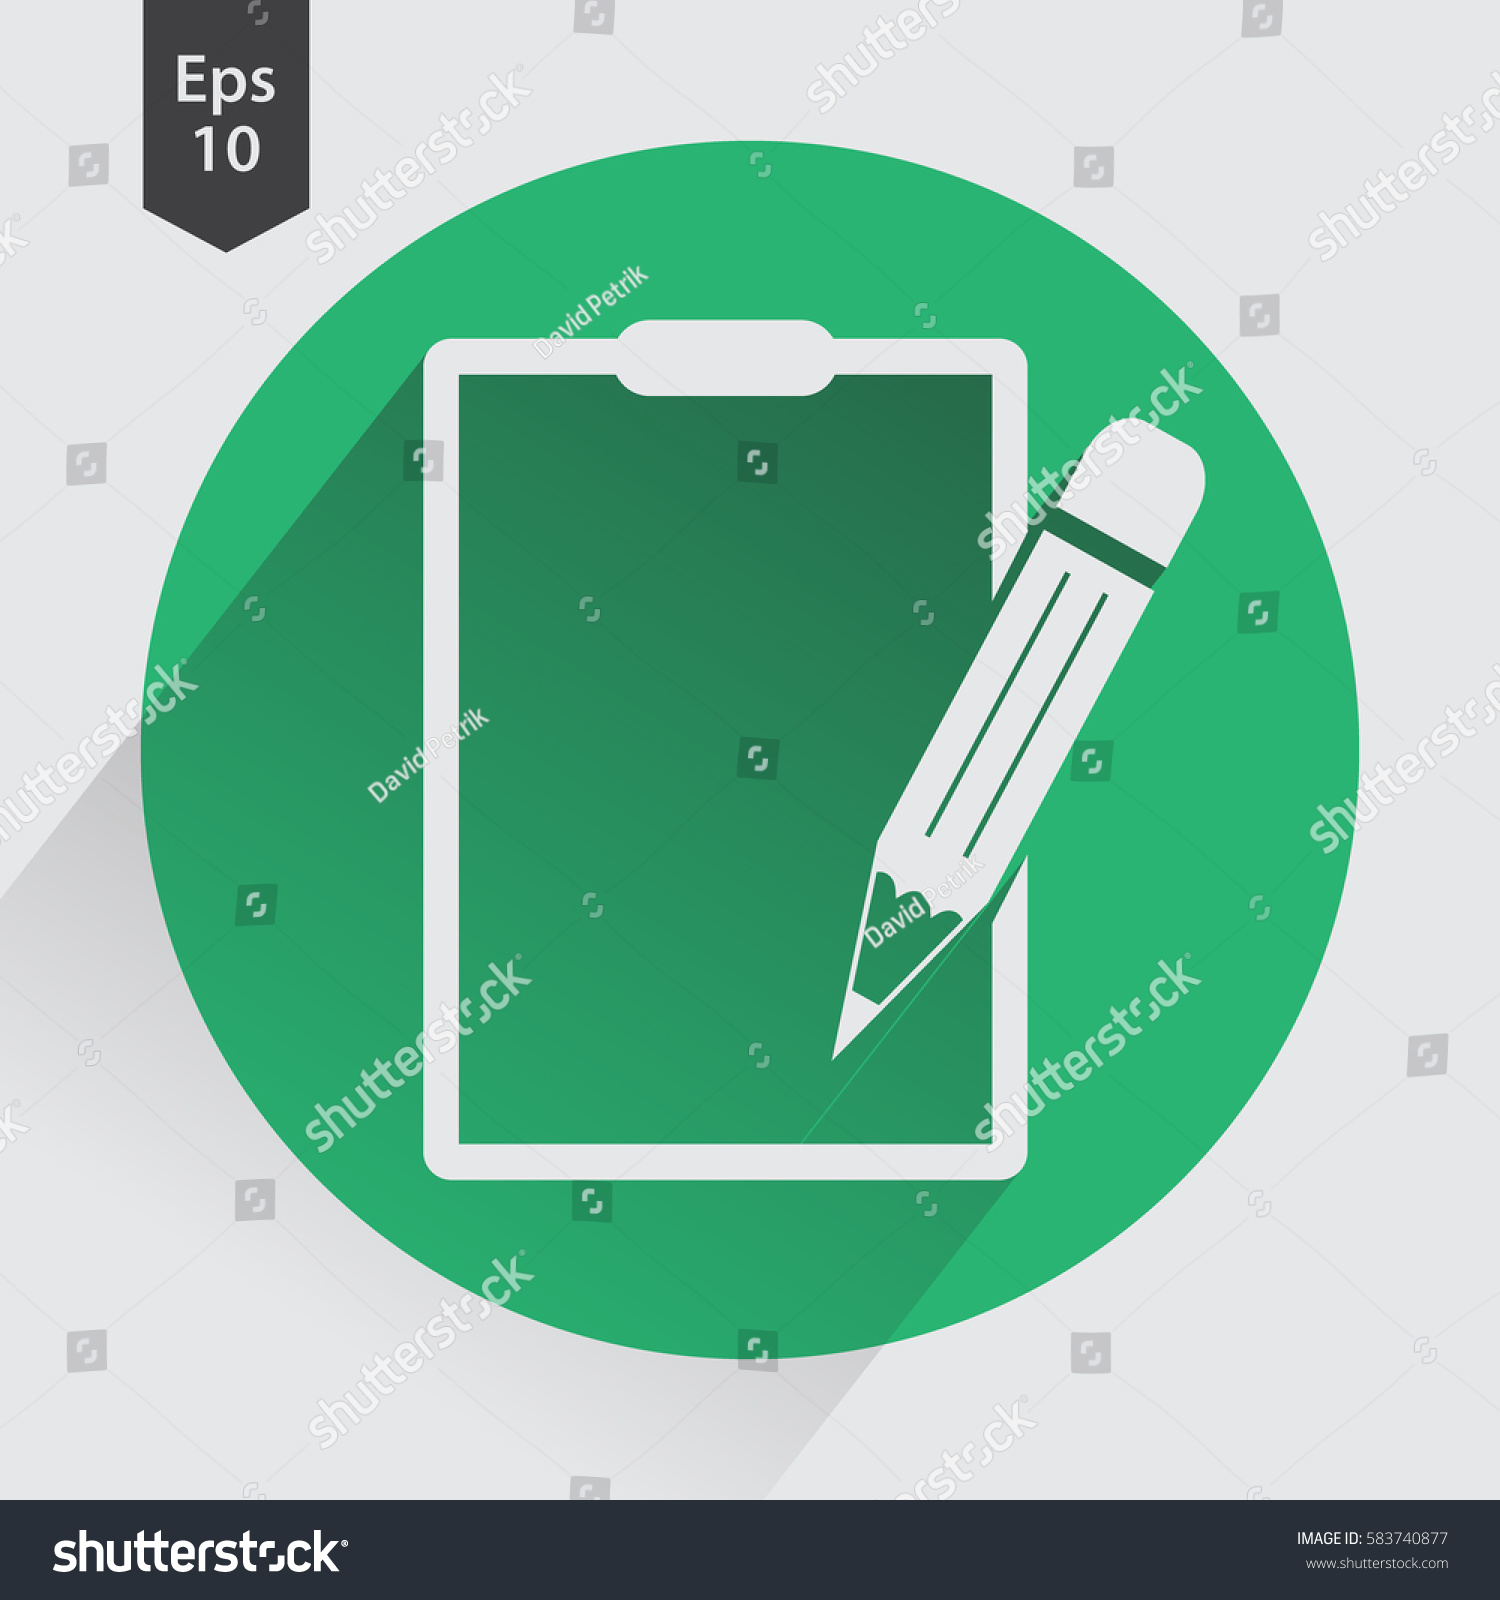 Notepad symbol simple flat icon paper stock vector 583740877 notepad symbol simple flat icon of paper and pen notebook with some text biocorpaavc Choice Image